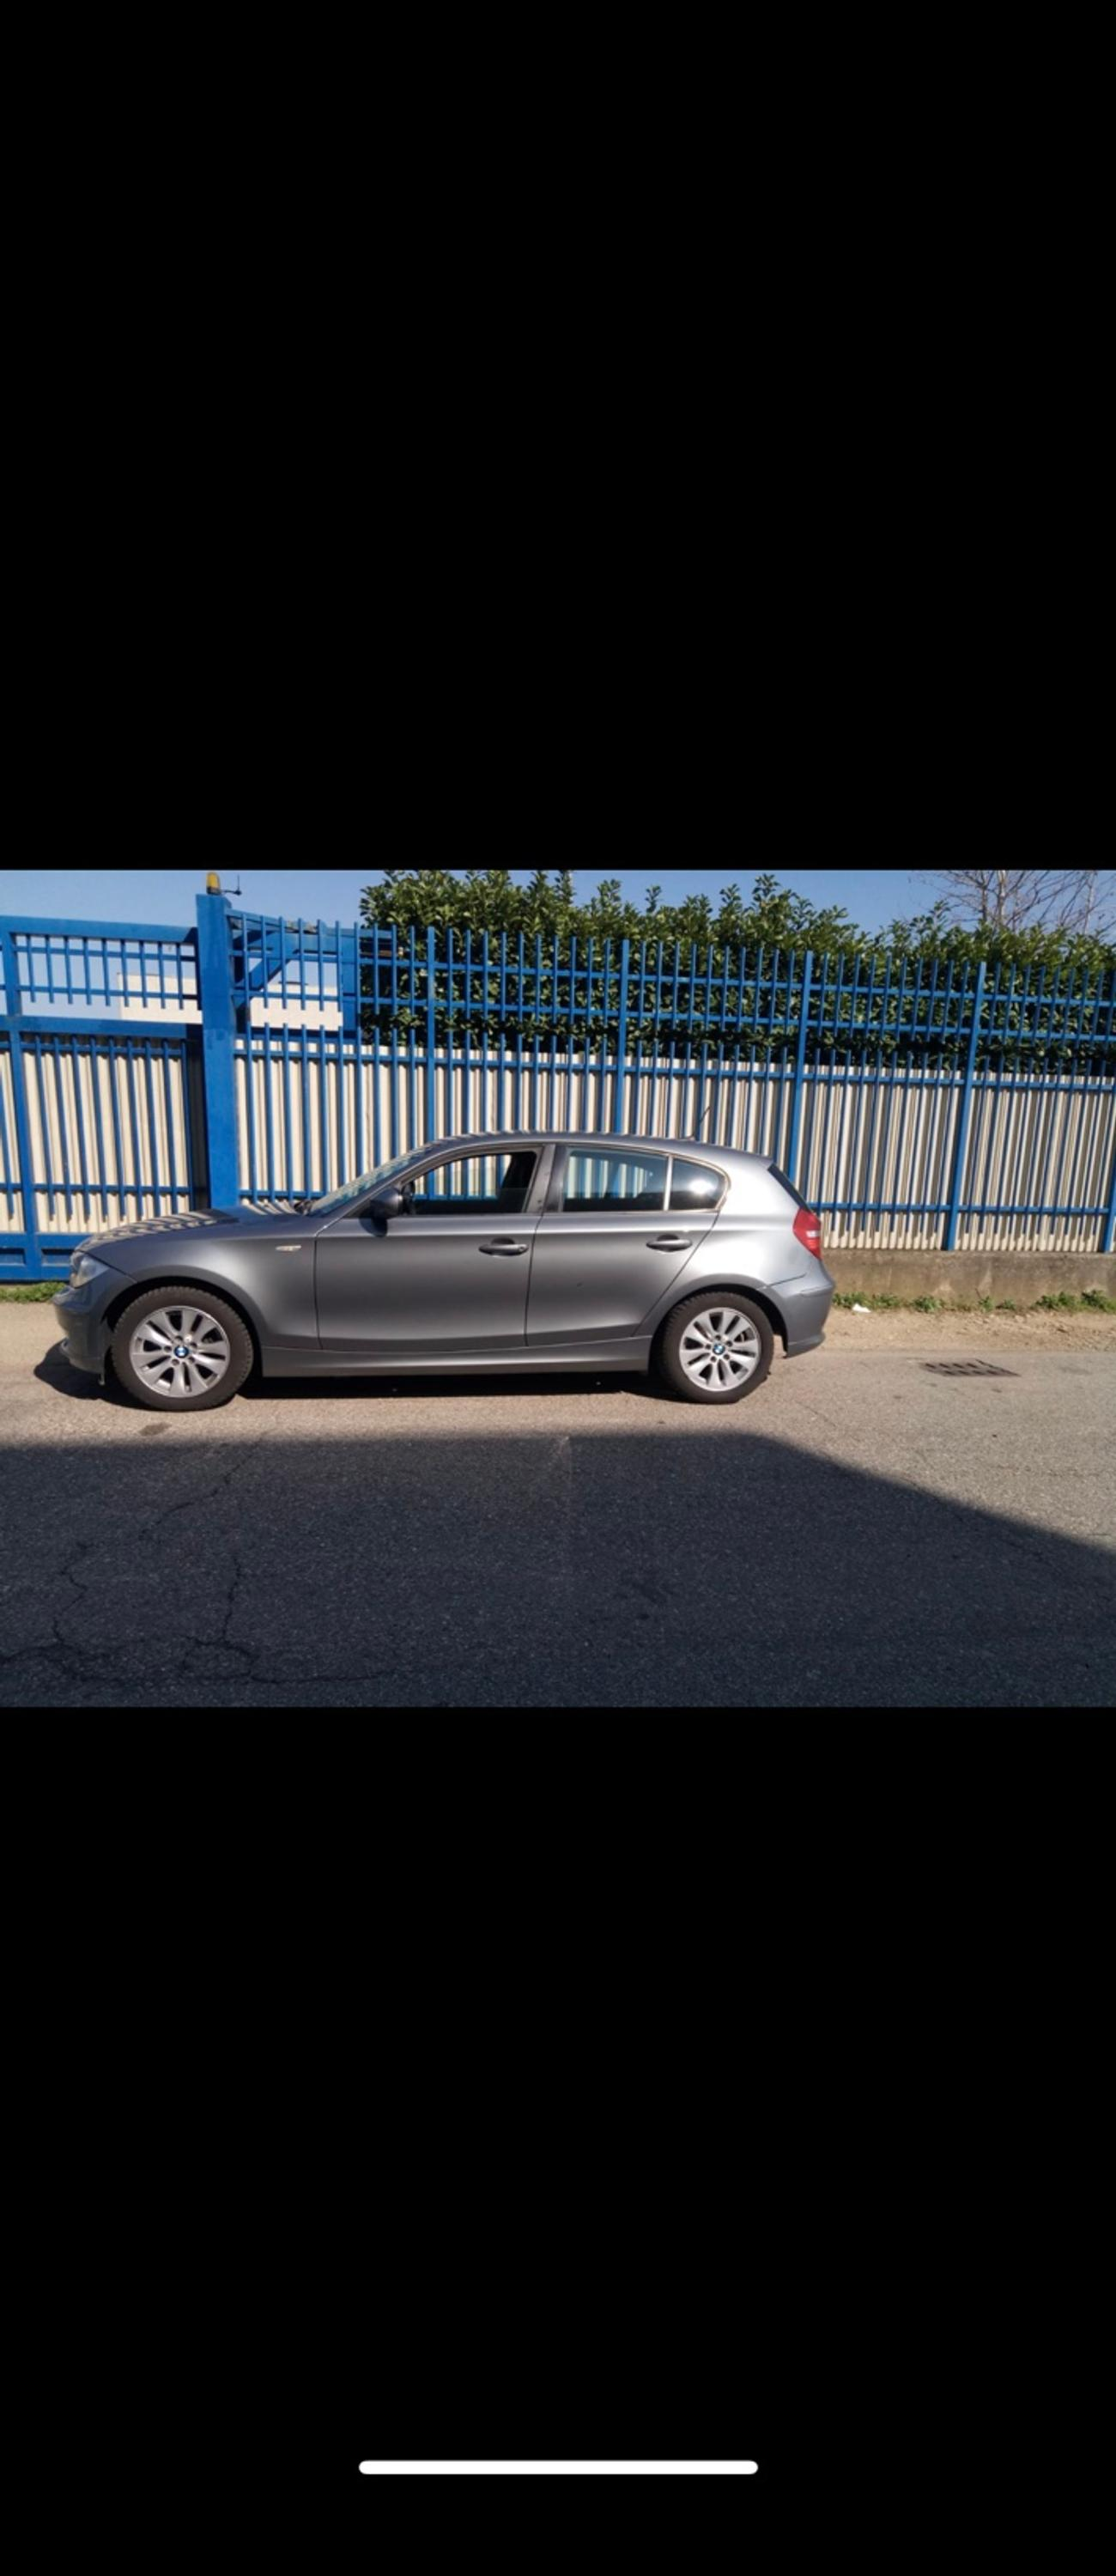 Bmw Serie 1 Euro 5 Fap In 21049 Tradate For 8 500 00 For Sale Shpock